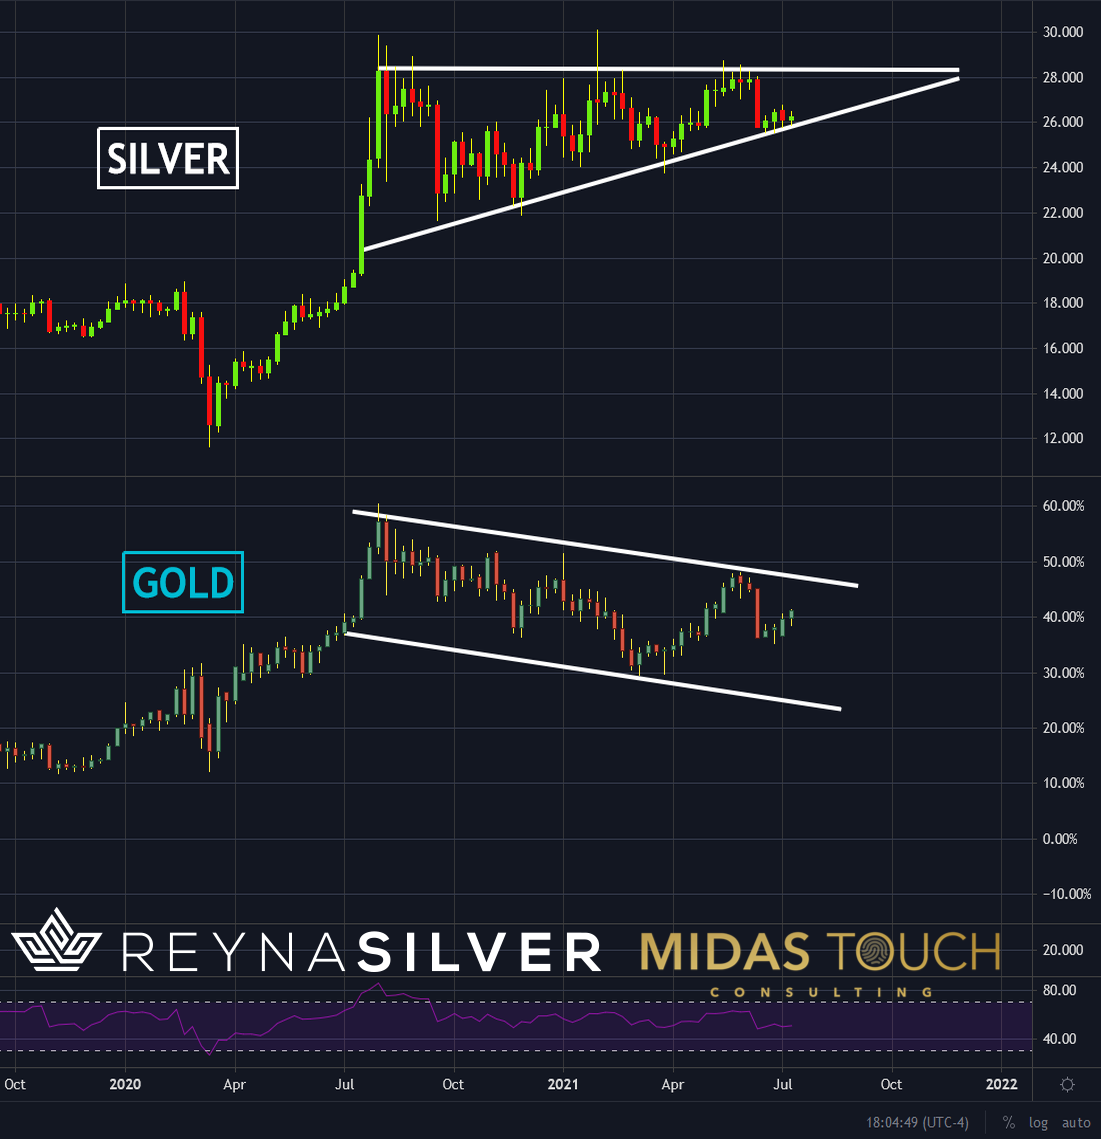 Silver versus Gold in US-Dollar, weekly chart as of July 15th, 2021.